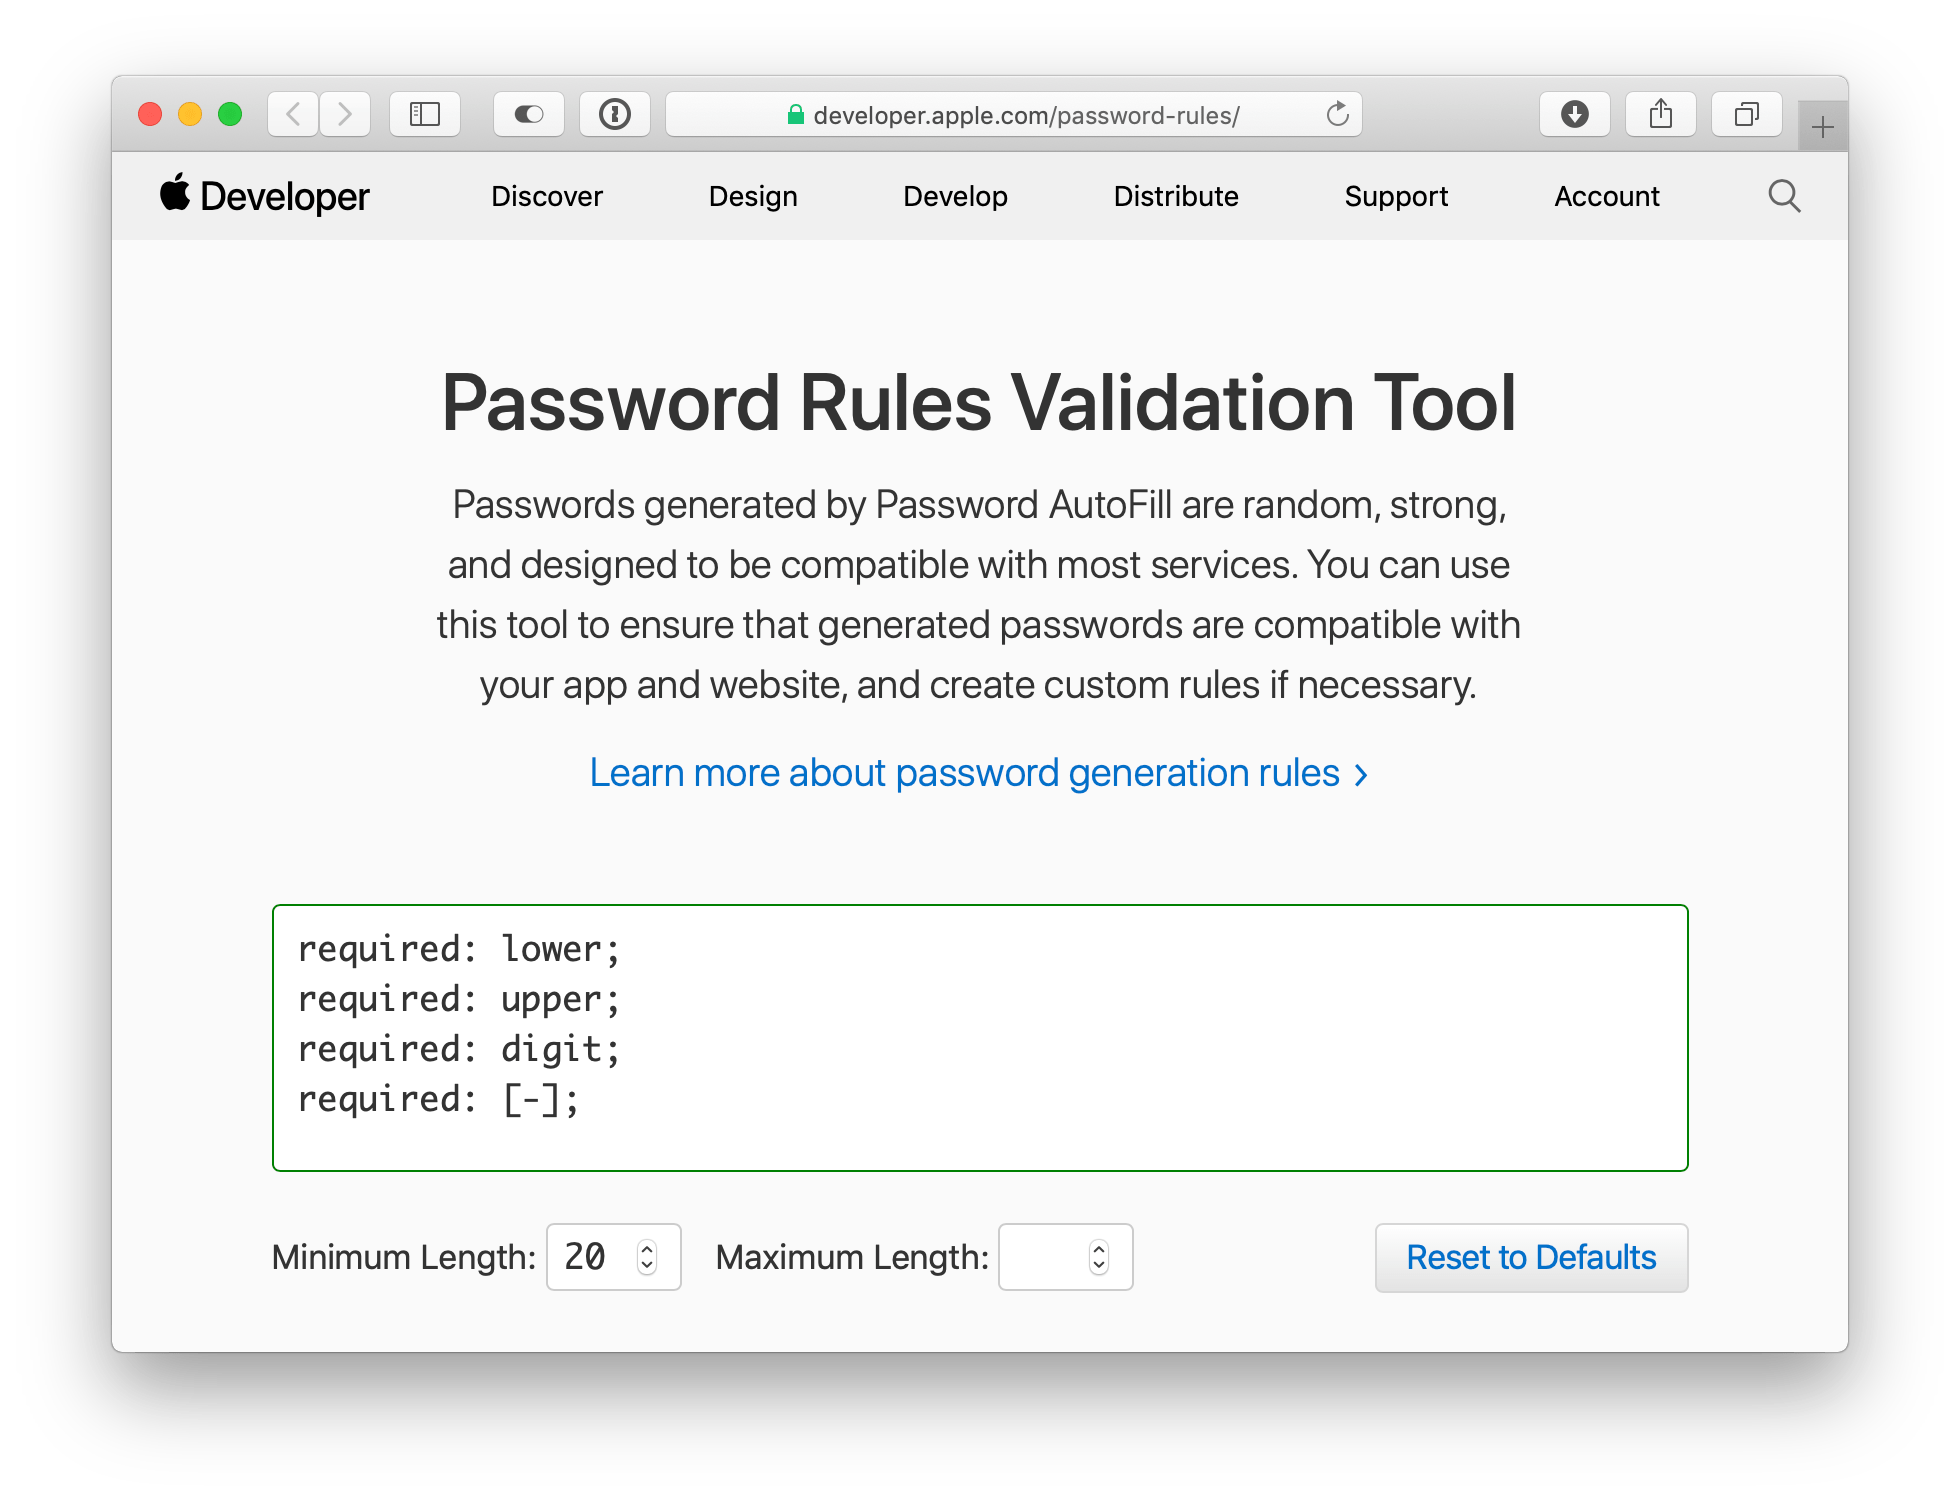 Password Rules Validation Tool